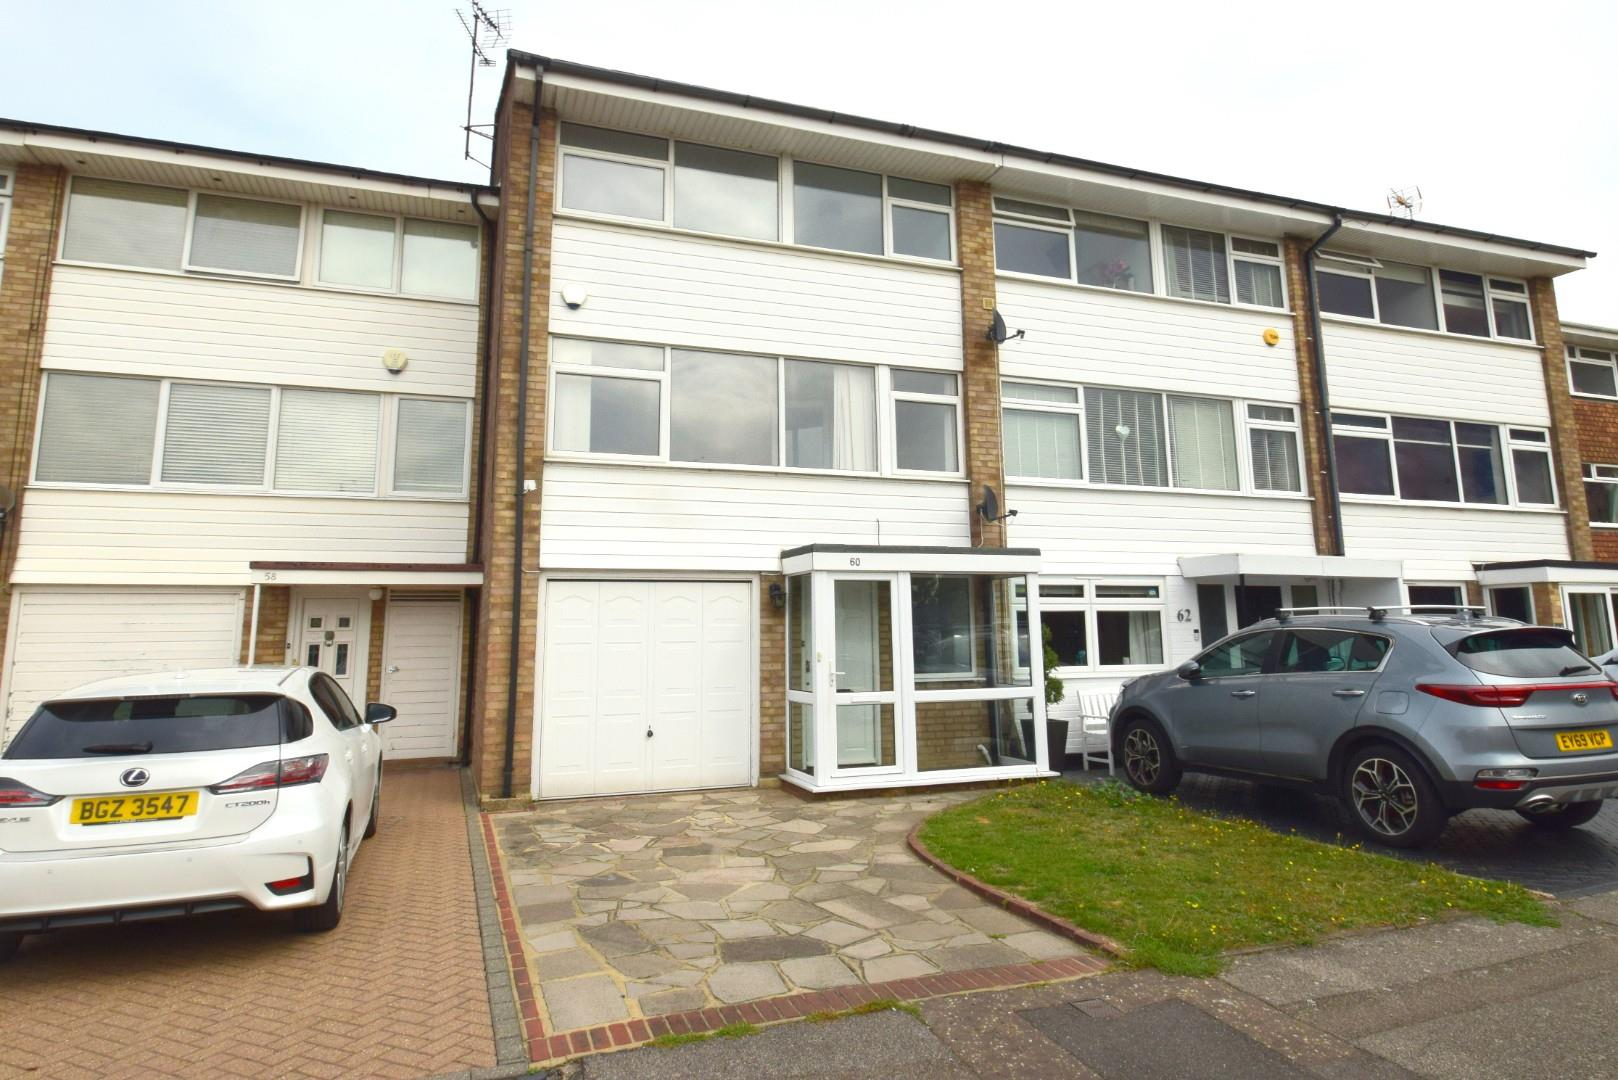 4 bed terraced house to rent in Little Thorpe, Essex, SS1